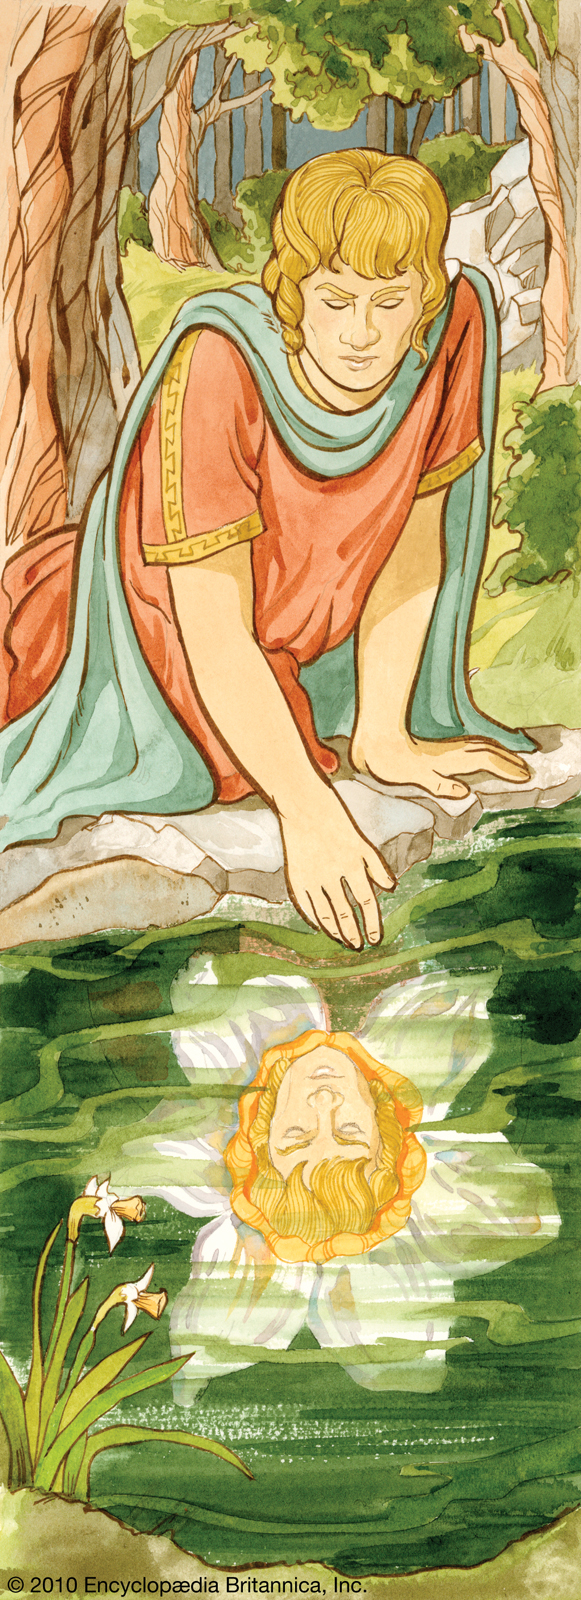 "This Encyclopedia Britannica image depicts the myth of narcissus, and explains why the Narcissus flower means ""egotism""."